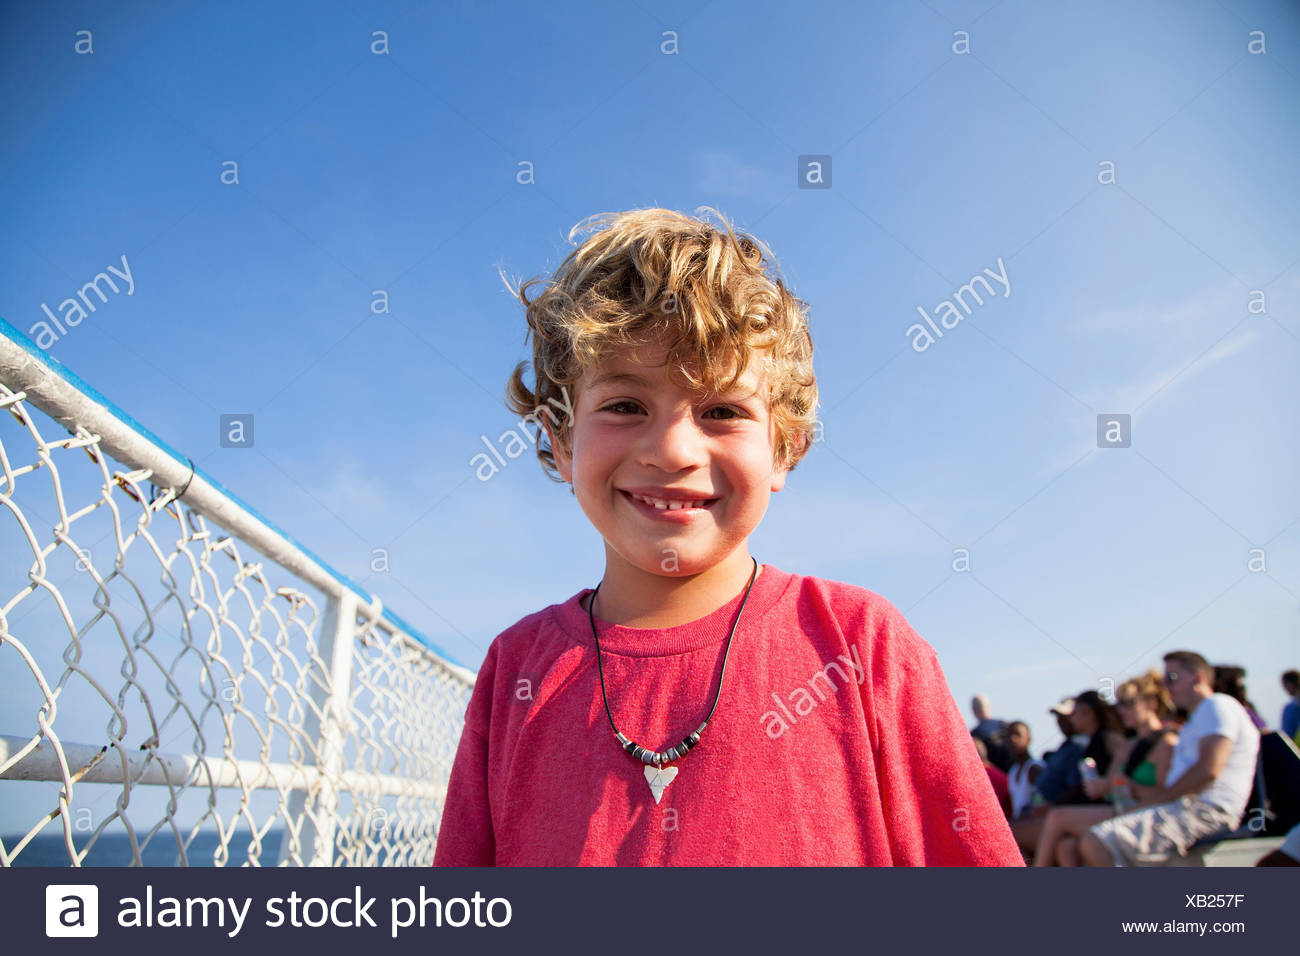 Portrait of blonde haired boy smiling - Stock Image